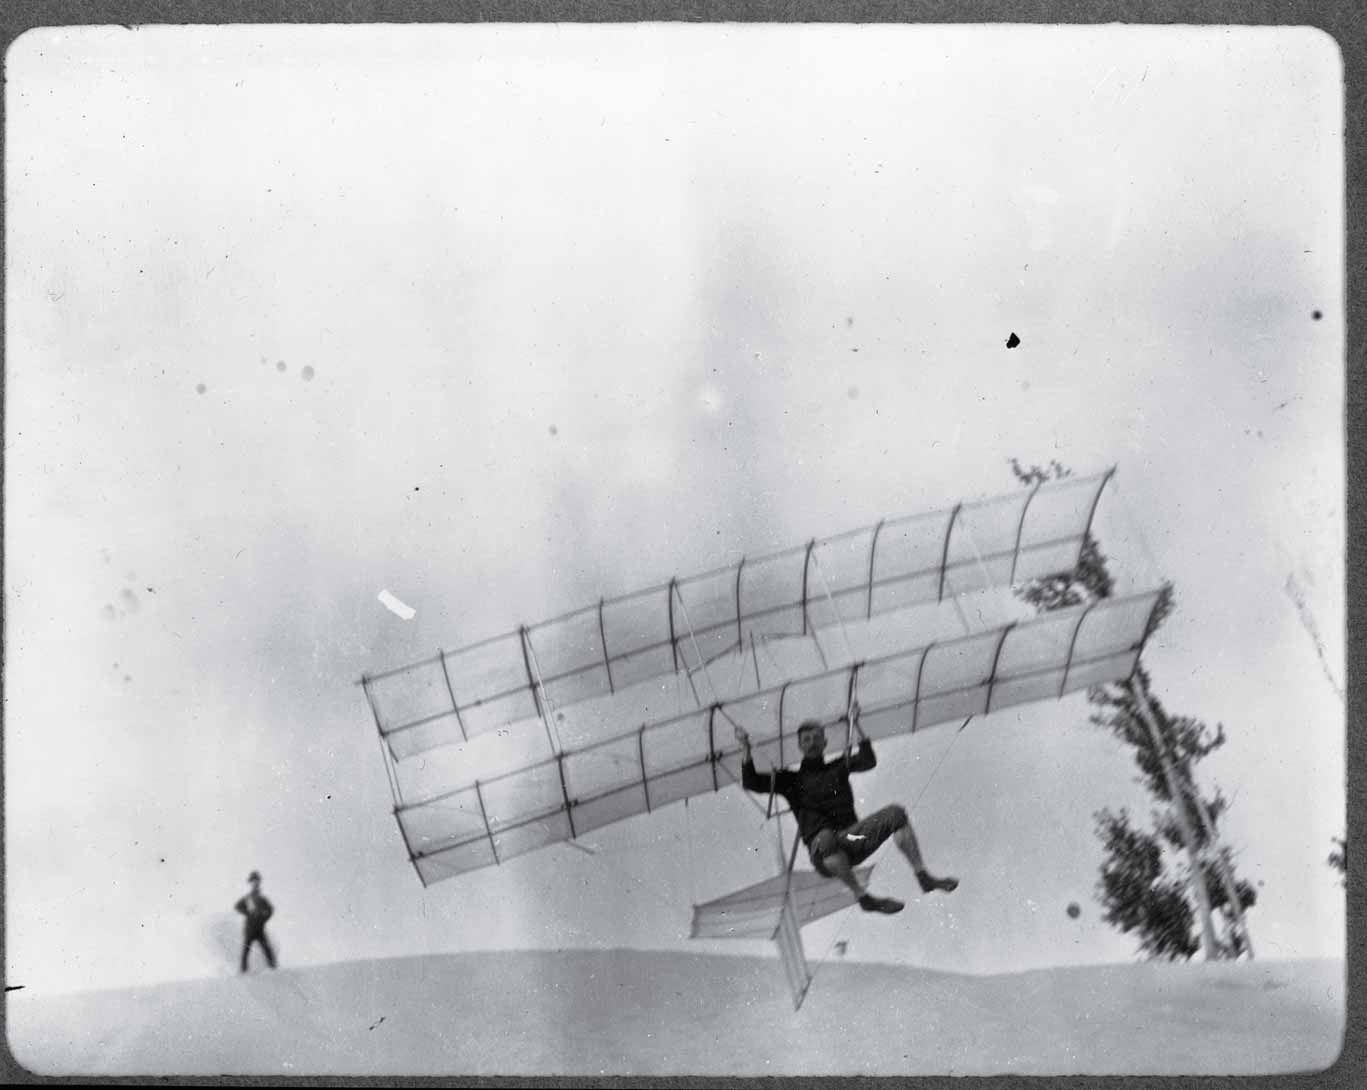 Augustus Herring, who later joined forces with a rival of the Wright brothers', Glenn Curtiss, tests a Herring-Chanute glider in 1896